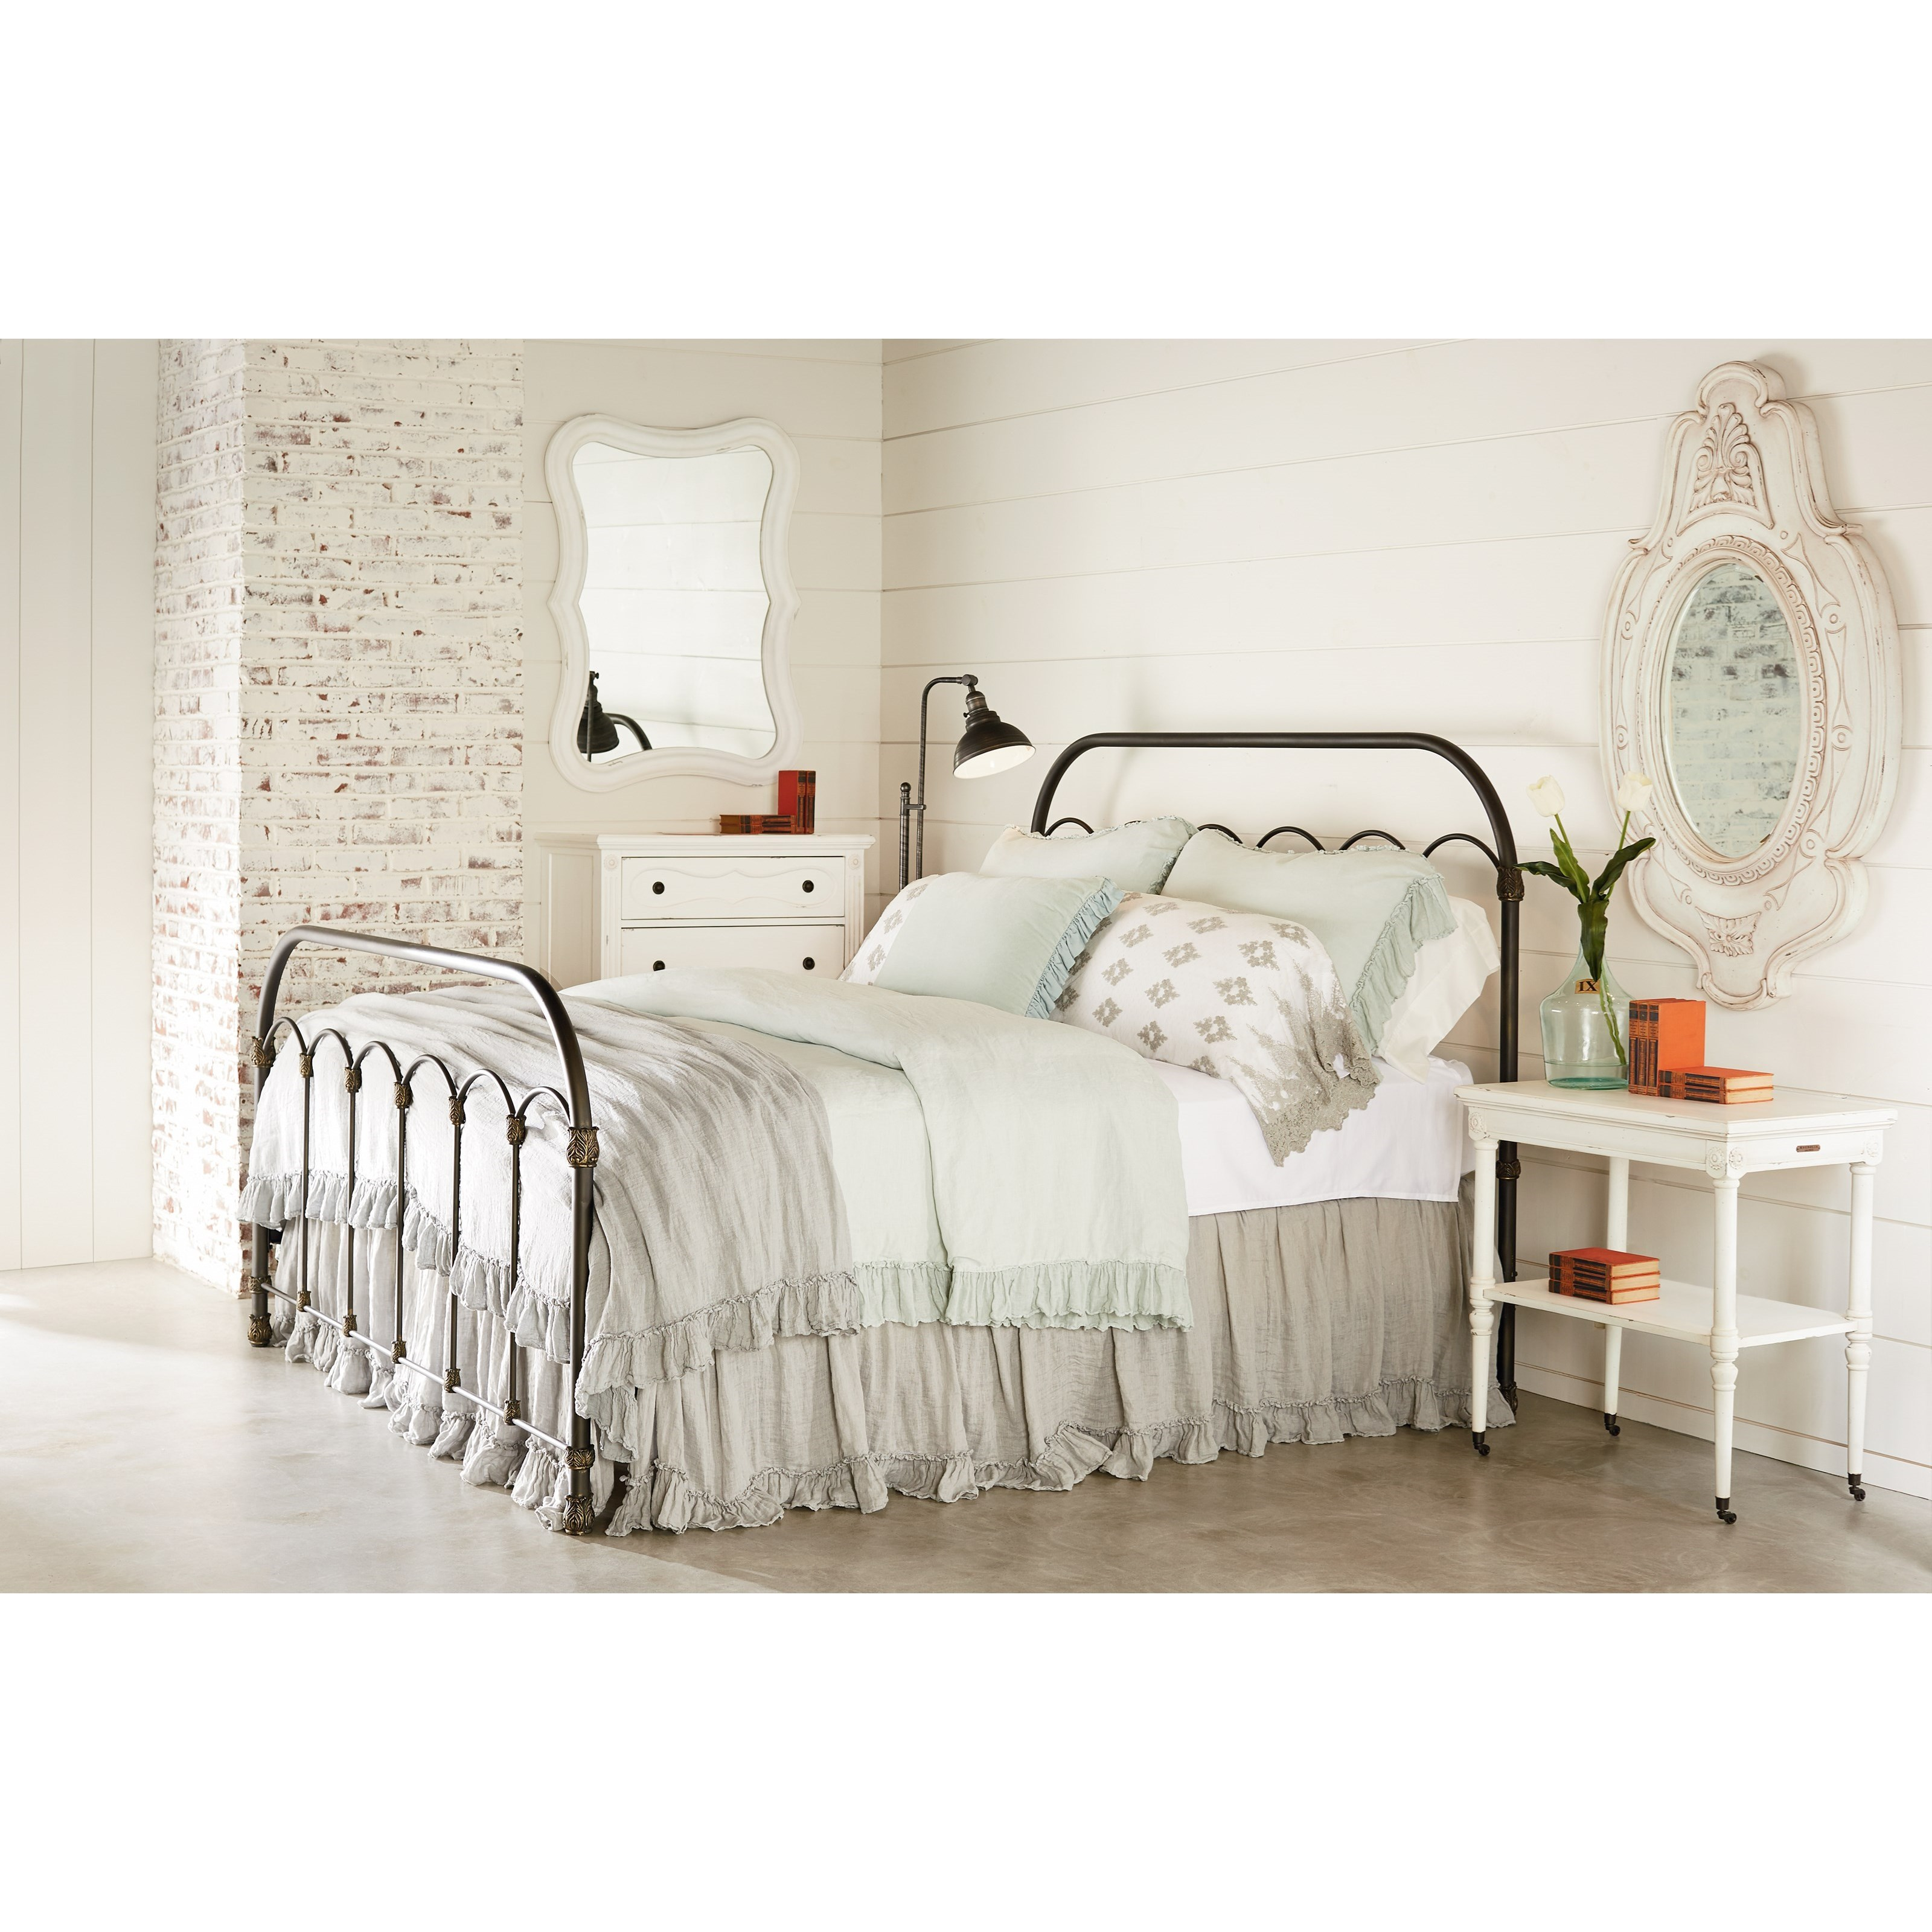 Primitive King Bedroom Group by Magnolia Home by Joanna Gaines at Jacksonville Furniture Mart